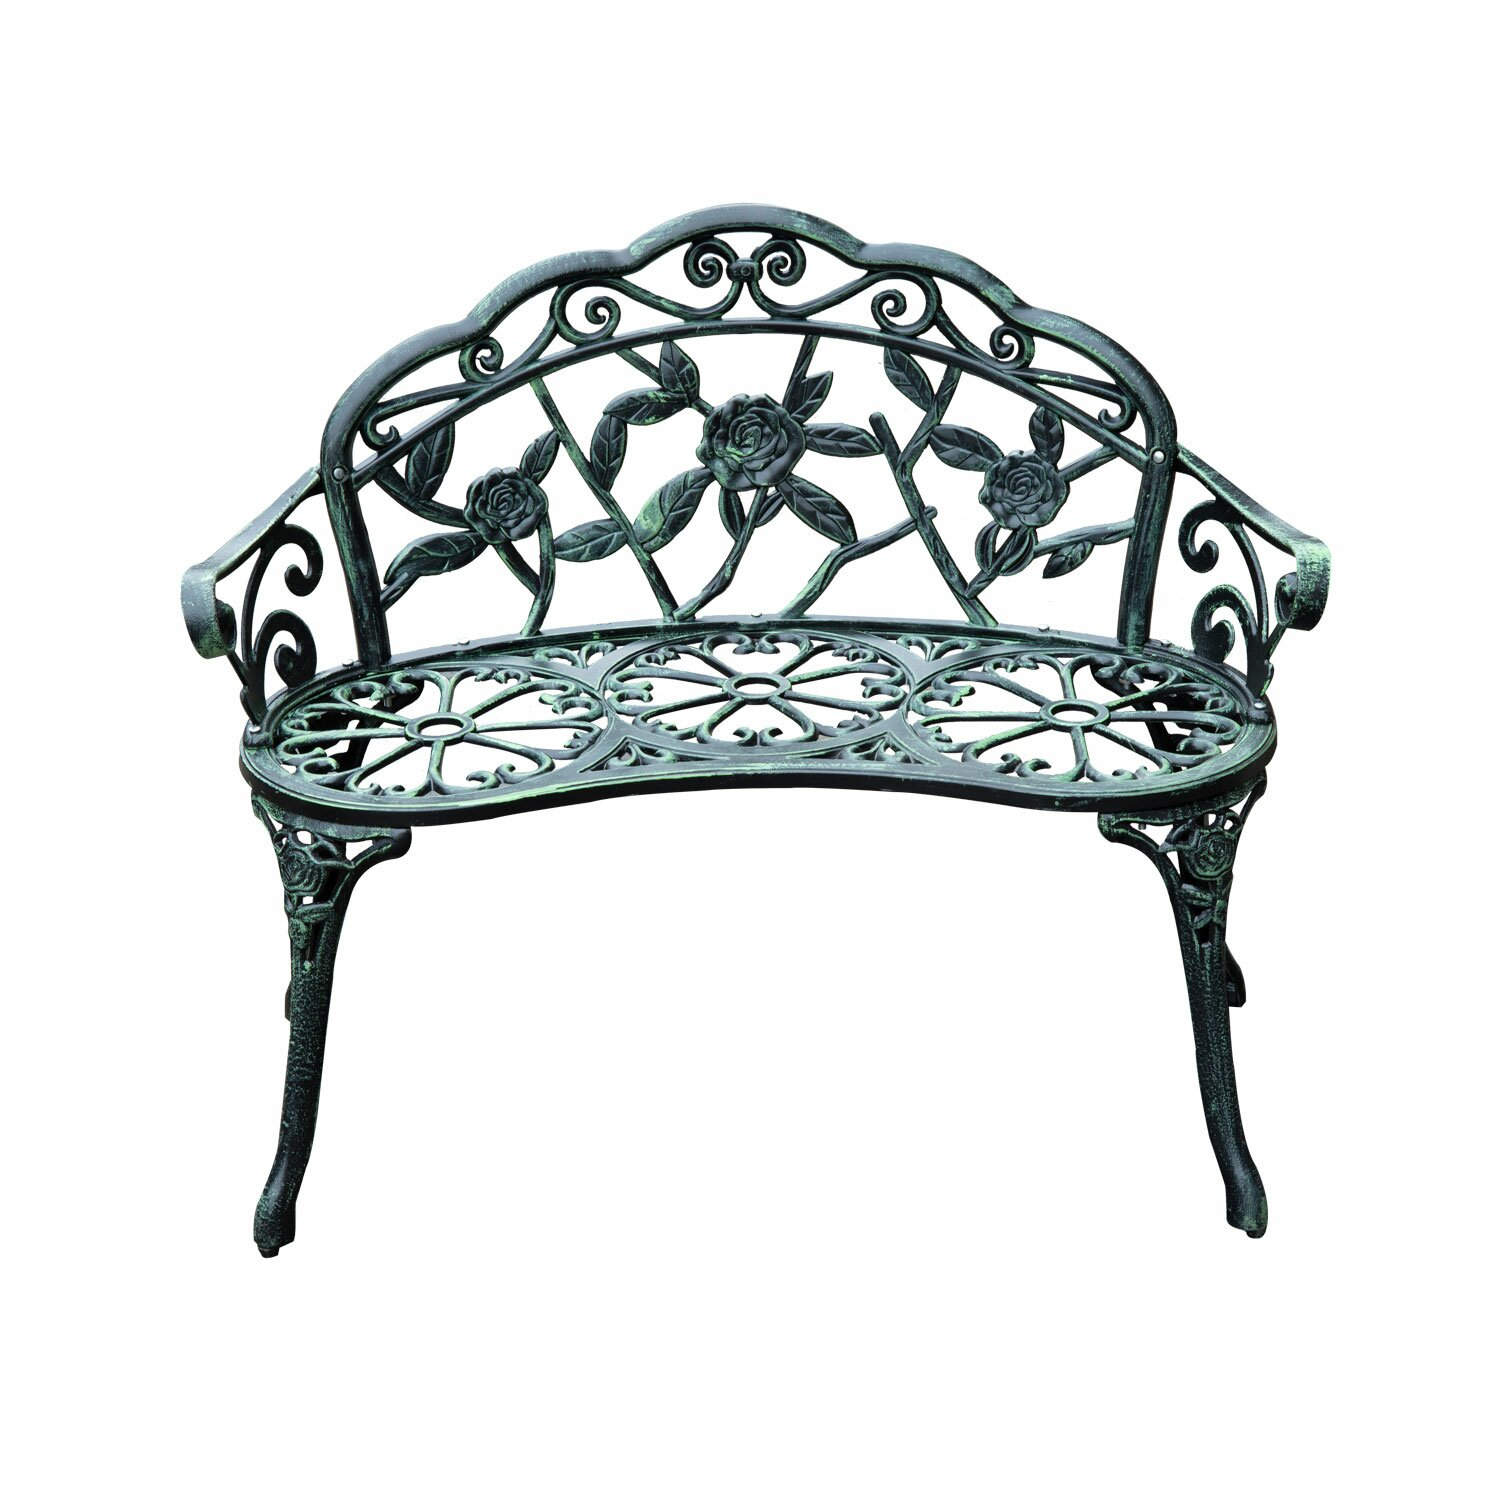 Outsunny Cast Iron Antique Outdoor Patio Garden Bench & Reviews ...